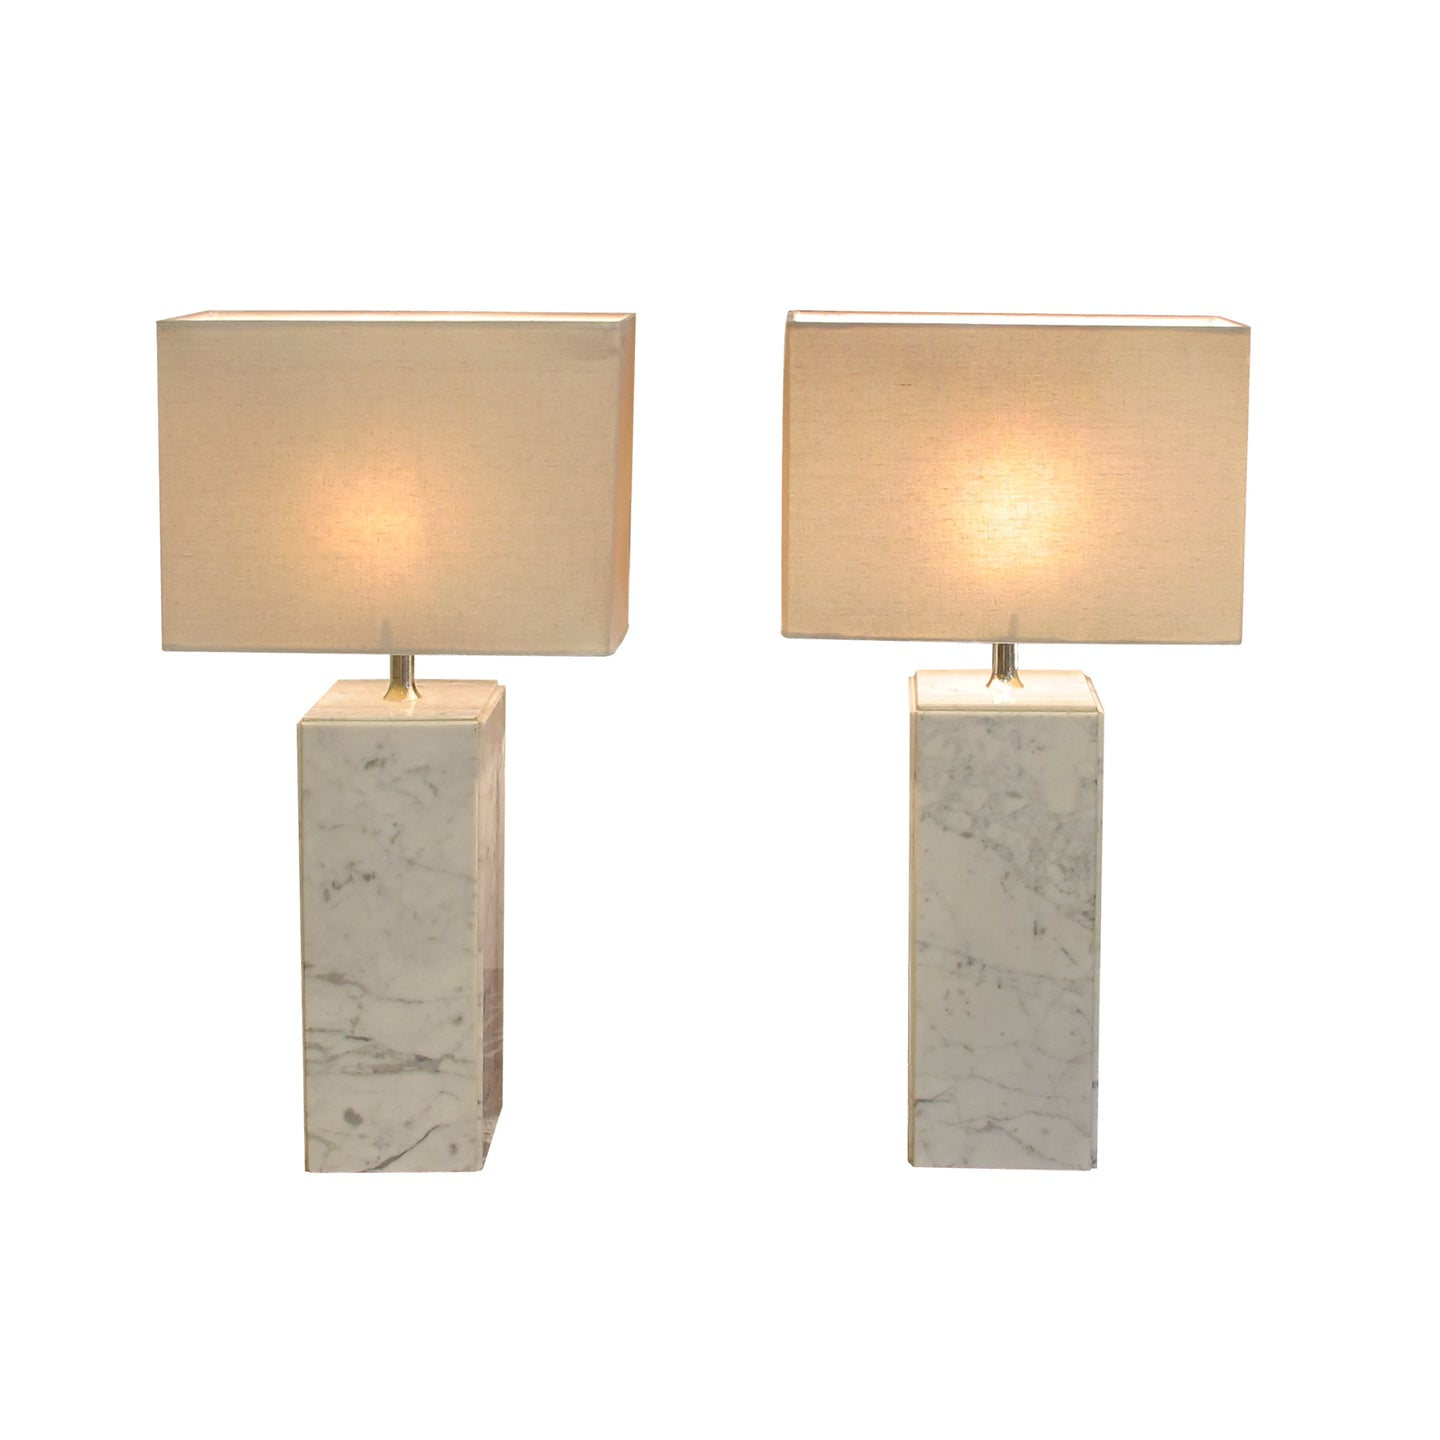 A pair of Italian white marble table lamps